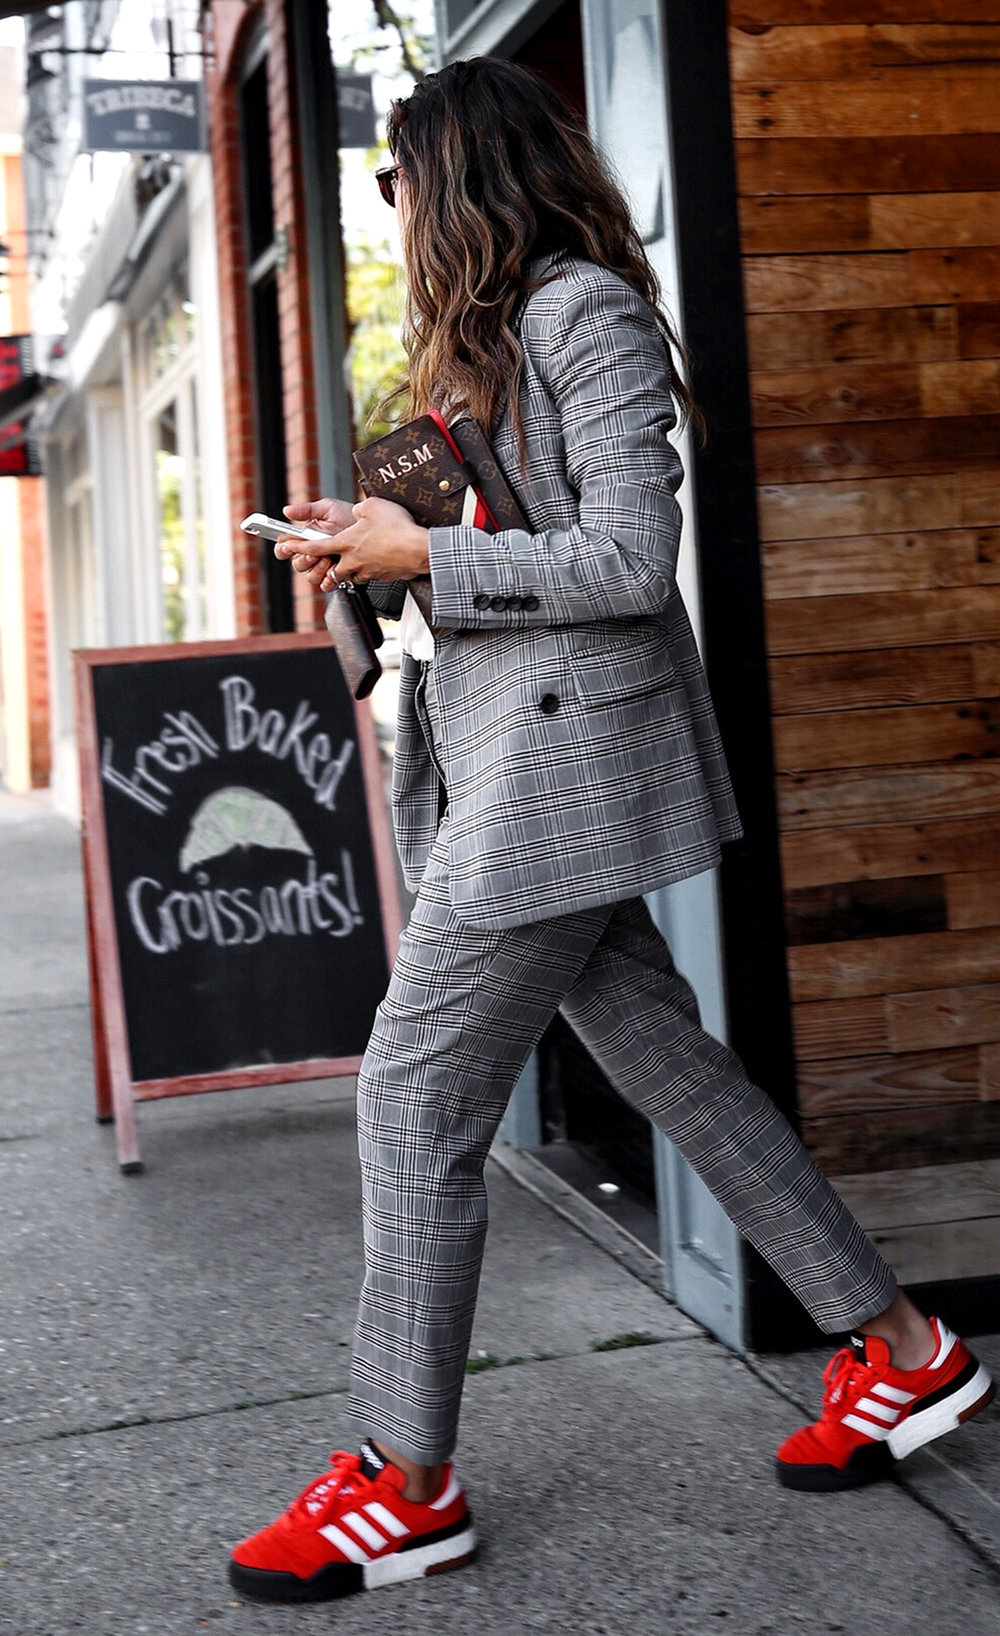 fw18 street style plaid suit women - menswear inspired - nordstrom - alexander wang Orange red AW BBall Soccer Sneakers, louis vuitton small agenda 7.JPG